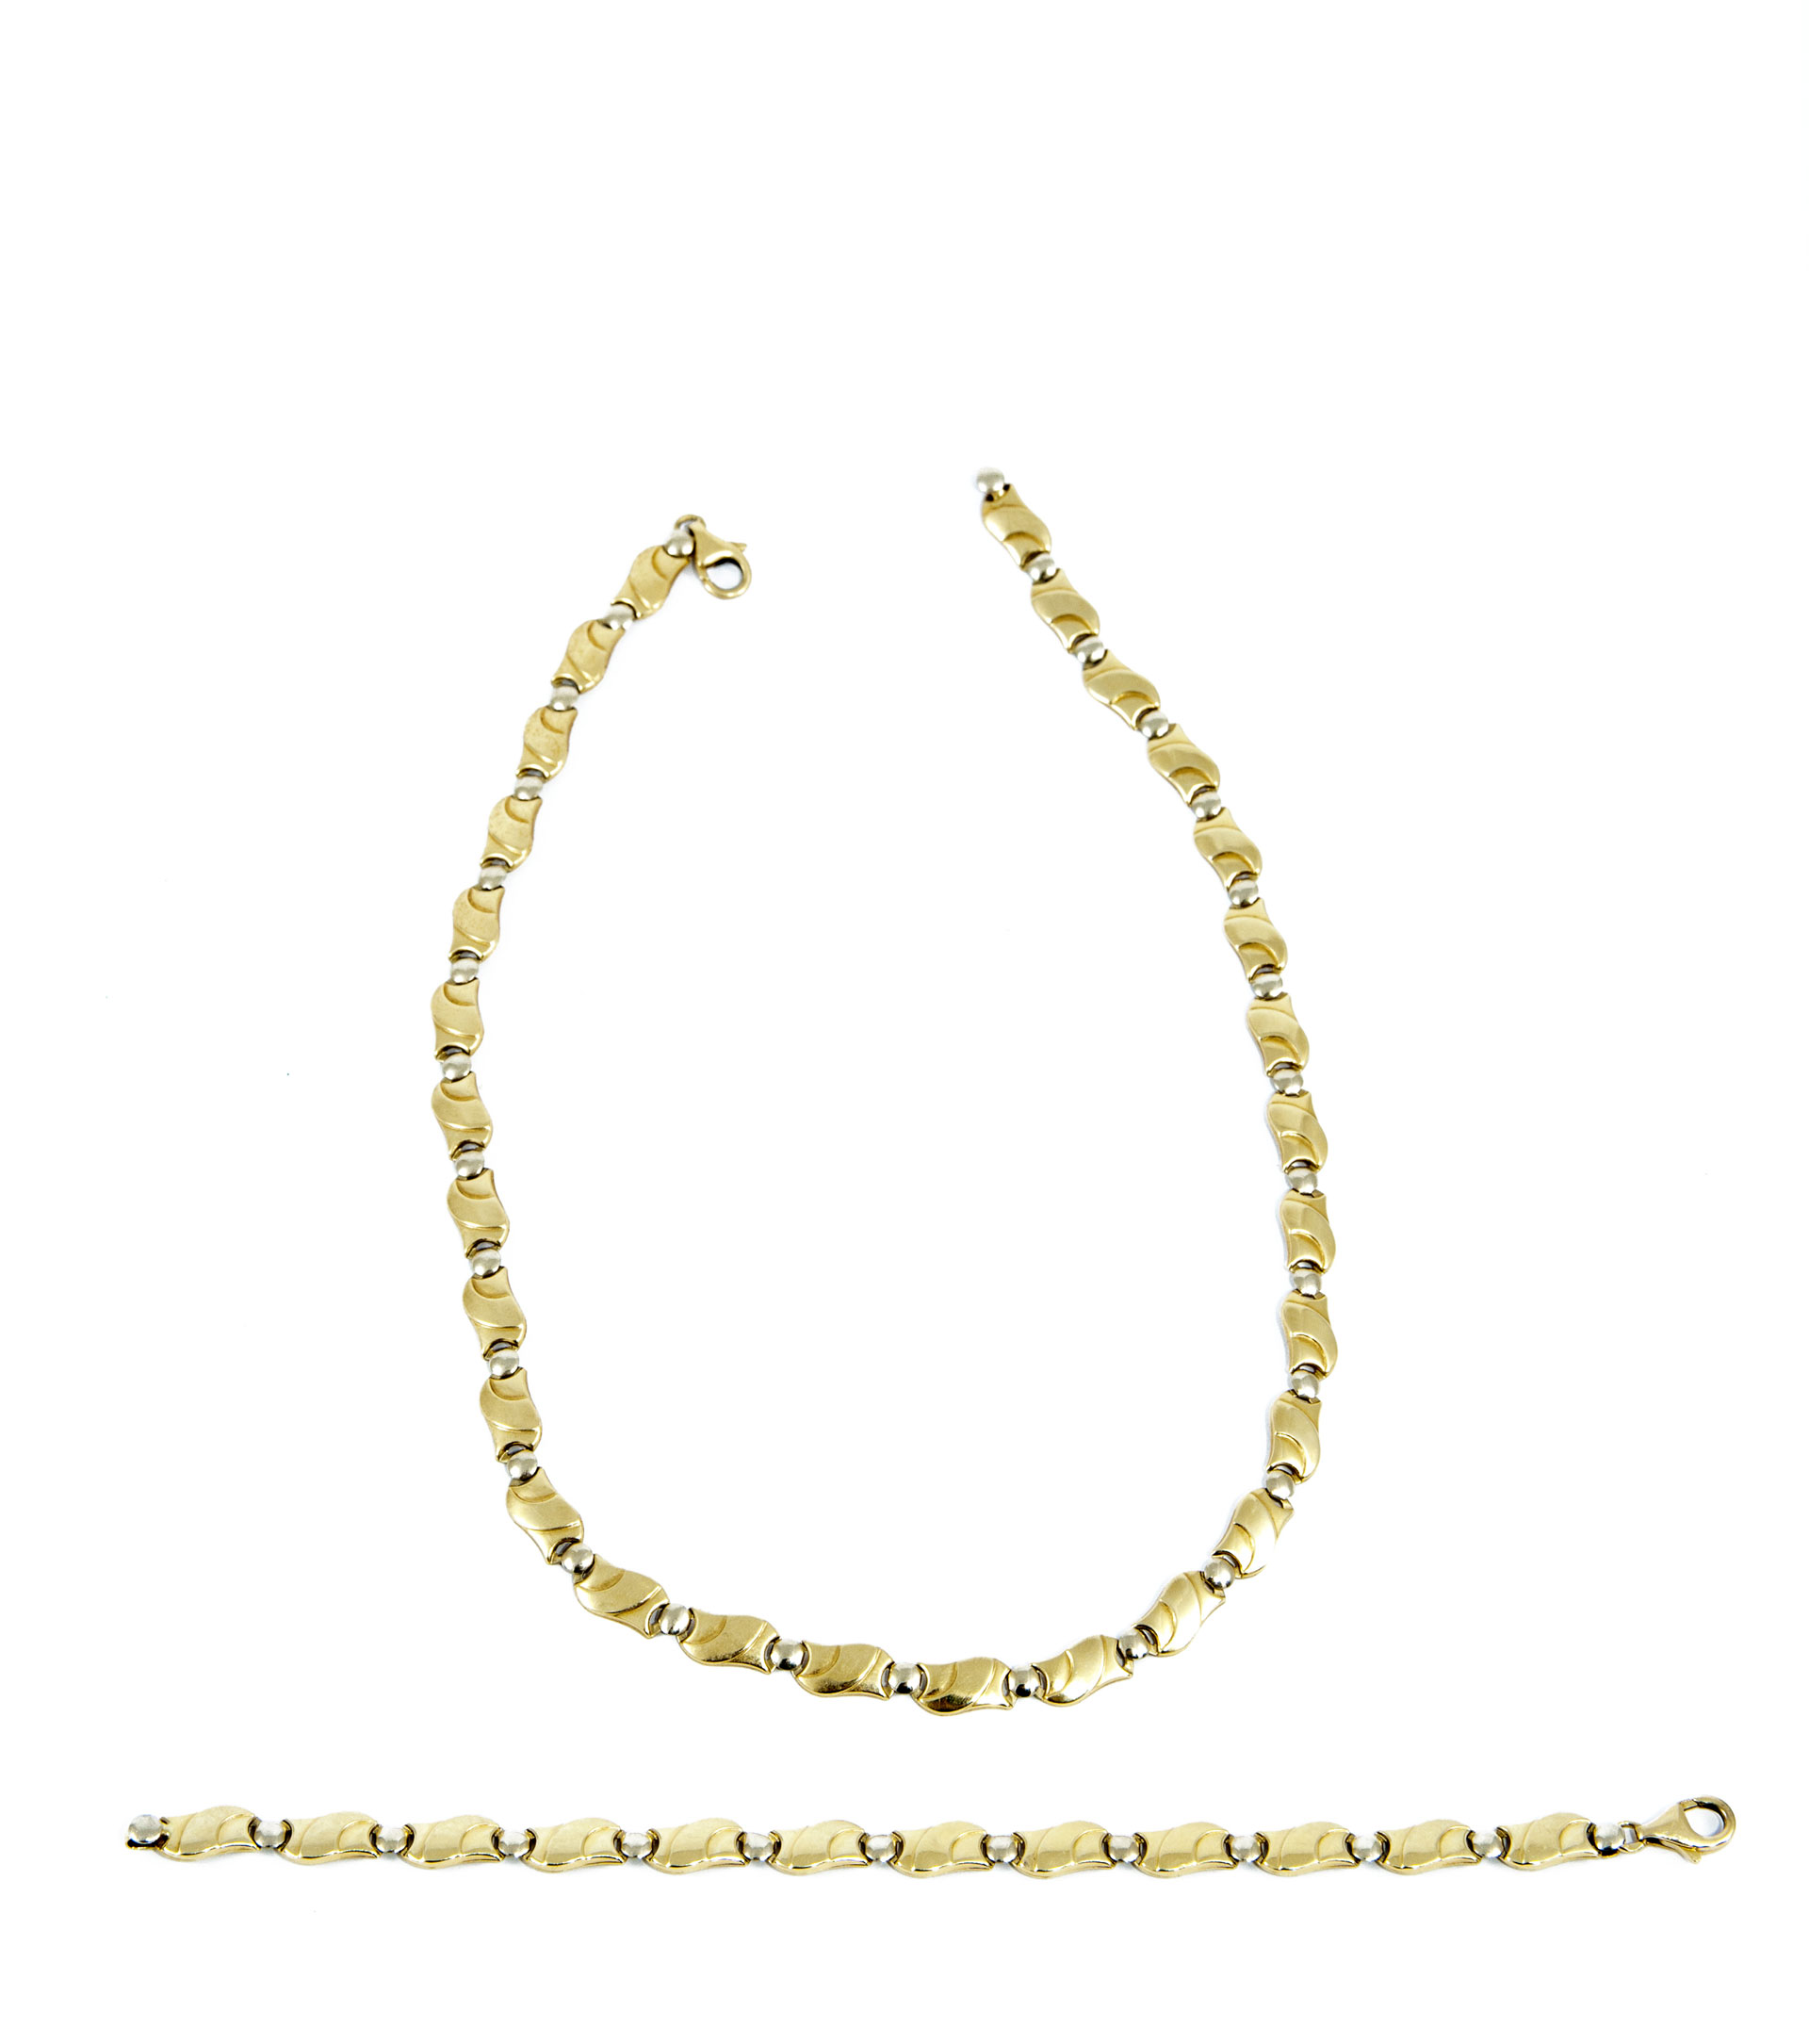 two gold necklaces laid flat on white background